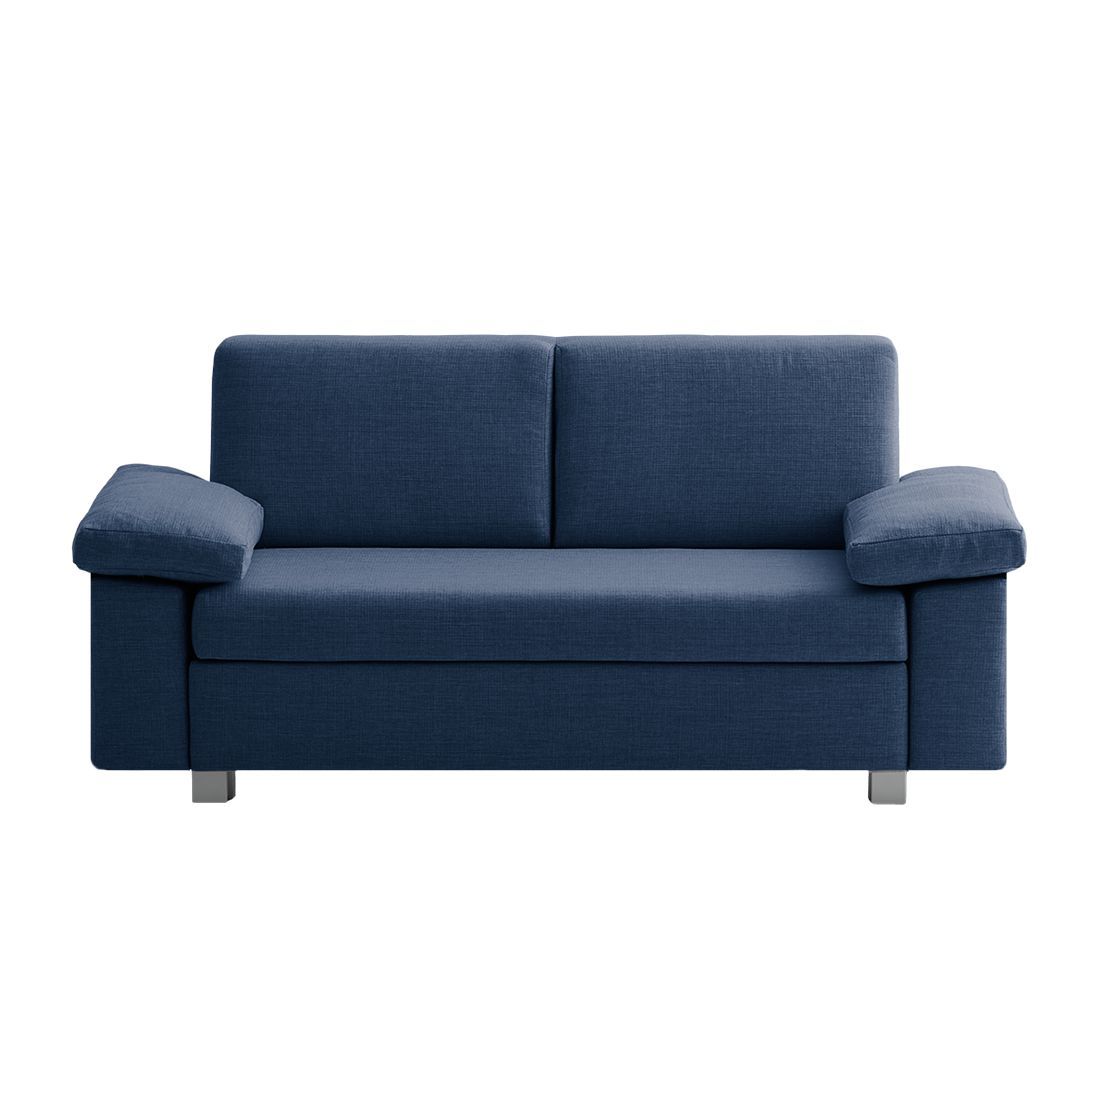 Canapé convertible Plaza - Tissu - Bleu - 172 cm - Types d'accoudoir rabattable, chillout by Franz F